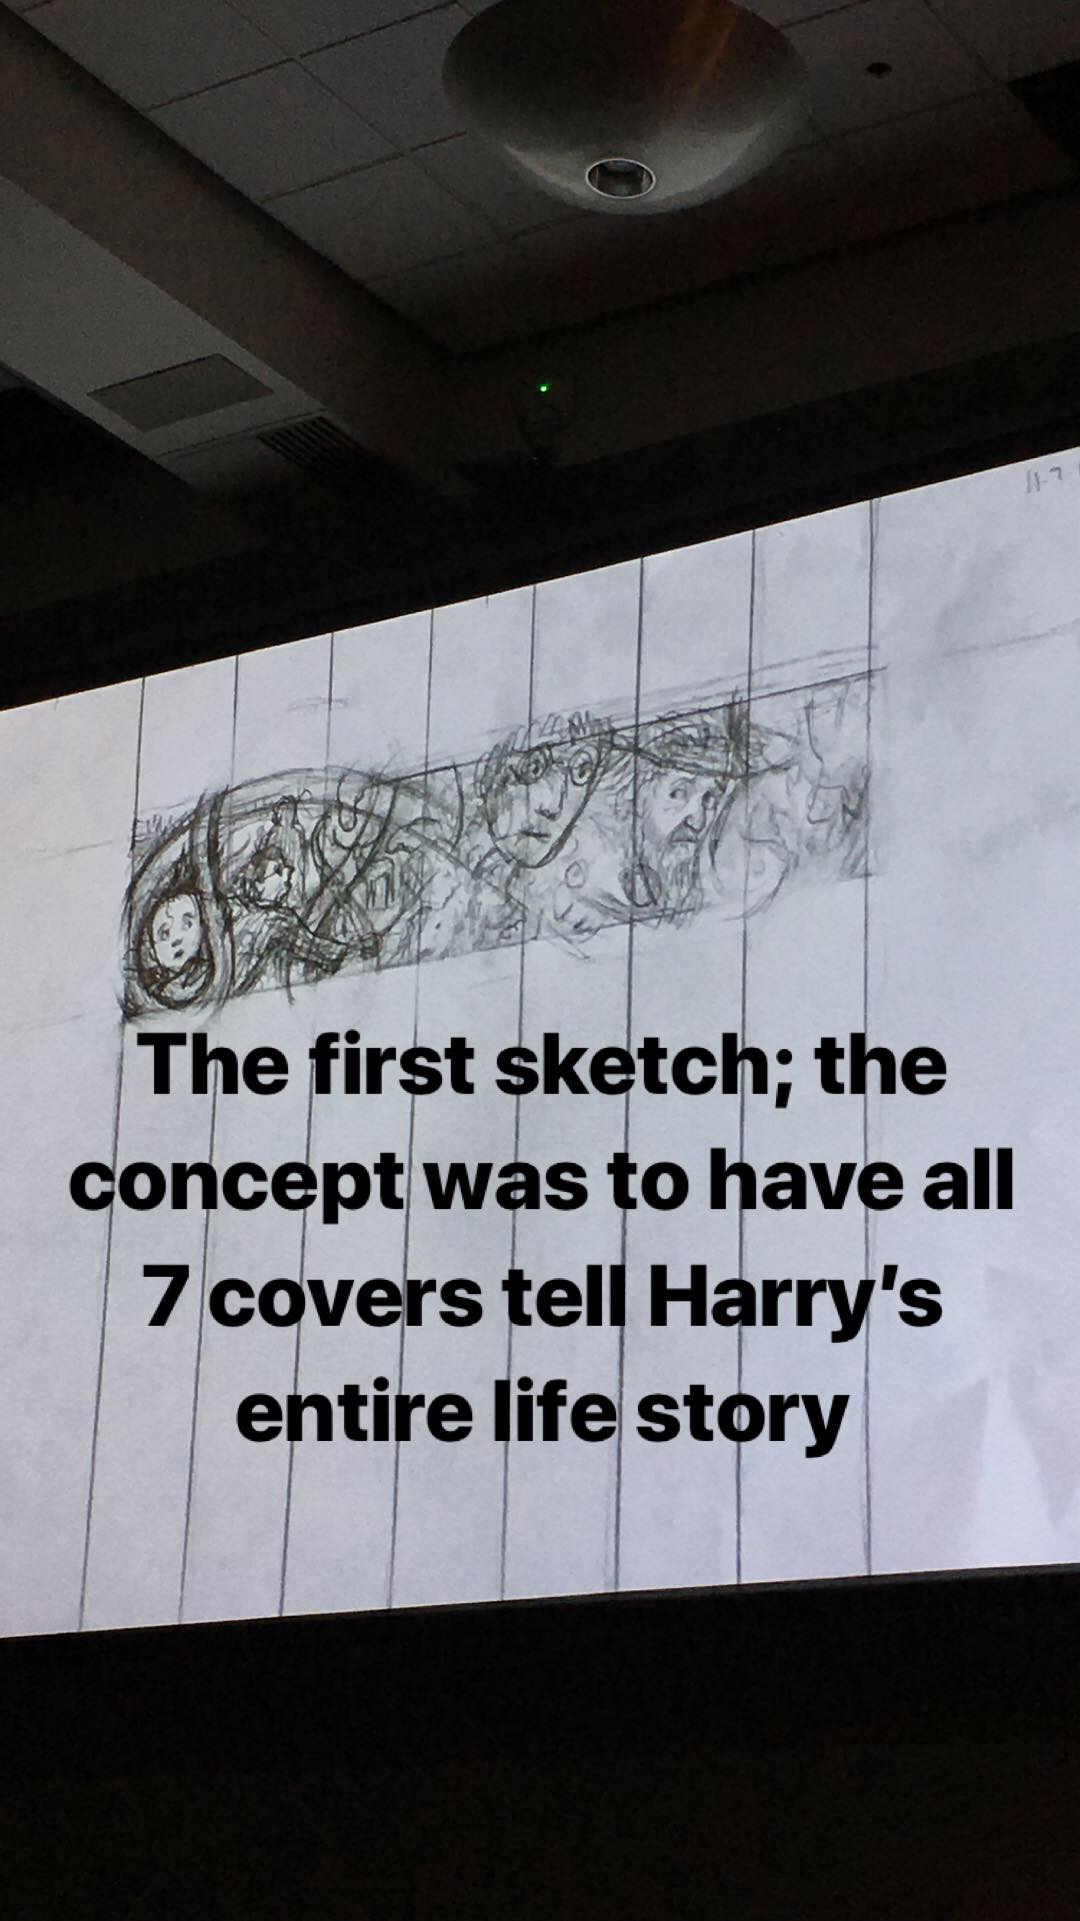 Brian Selznick's first sketch of the 20th-anniversary covers